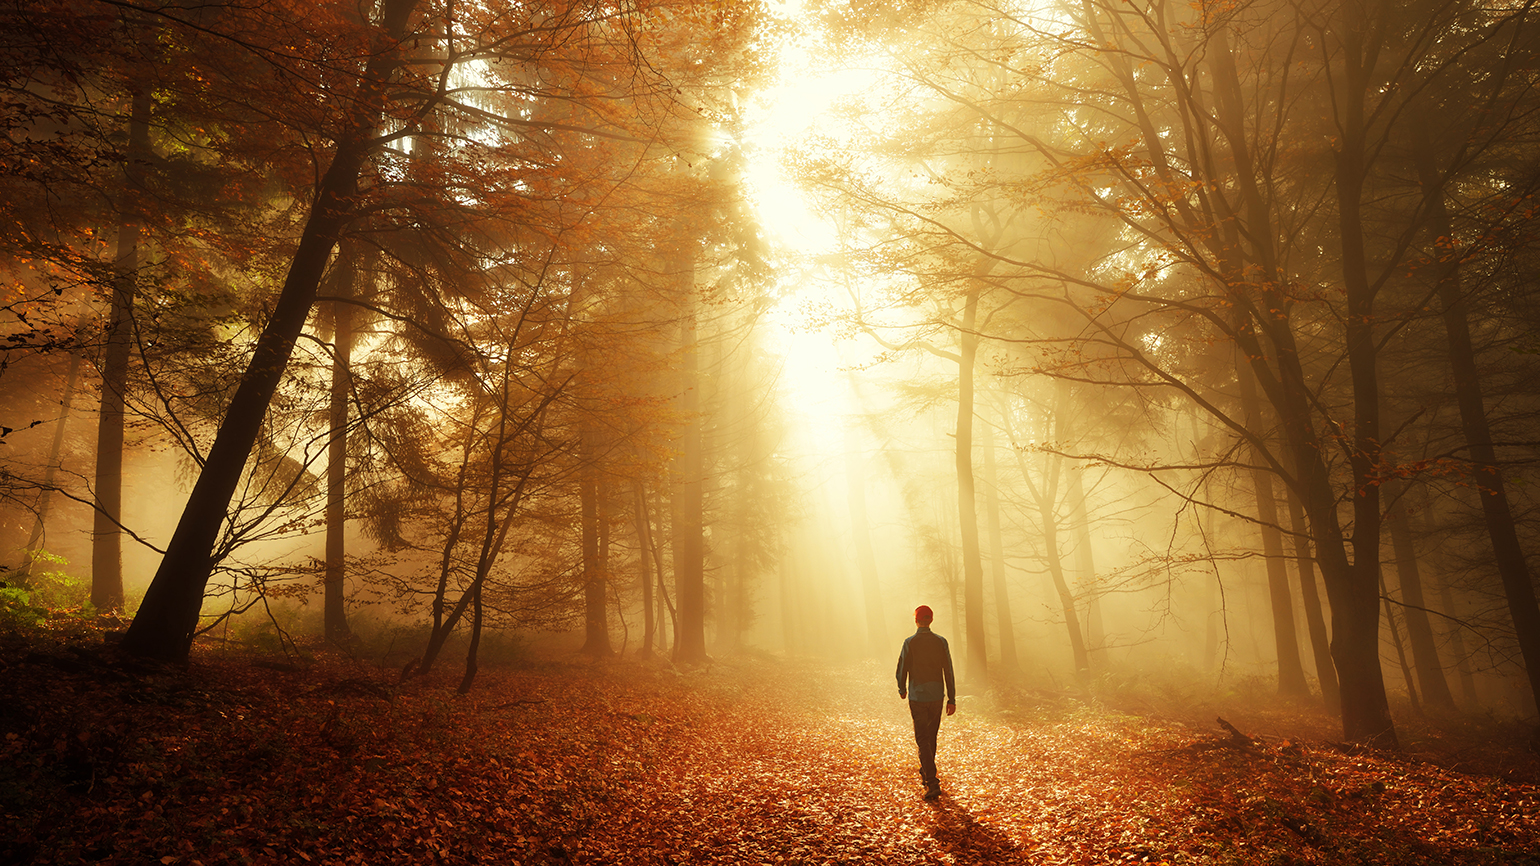 A man walks through an autumnal forest